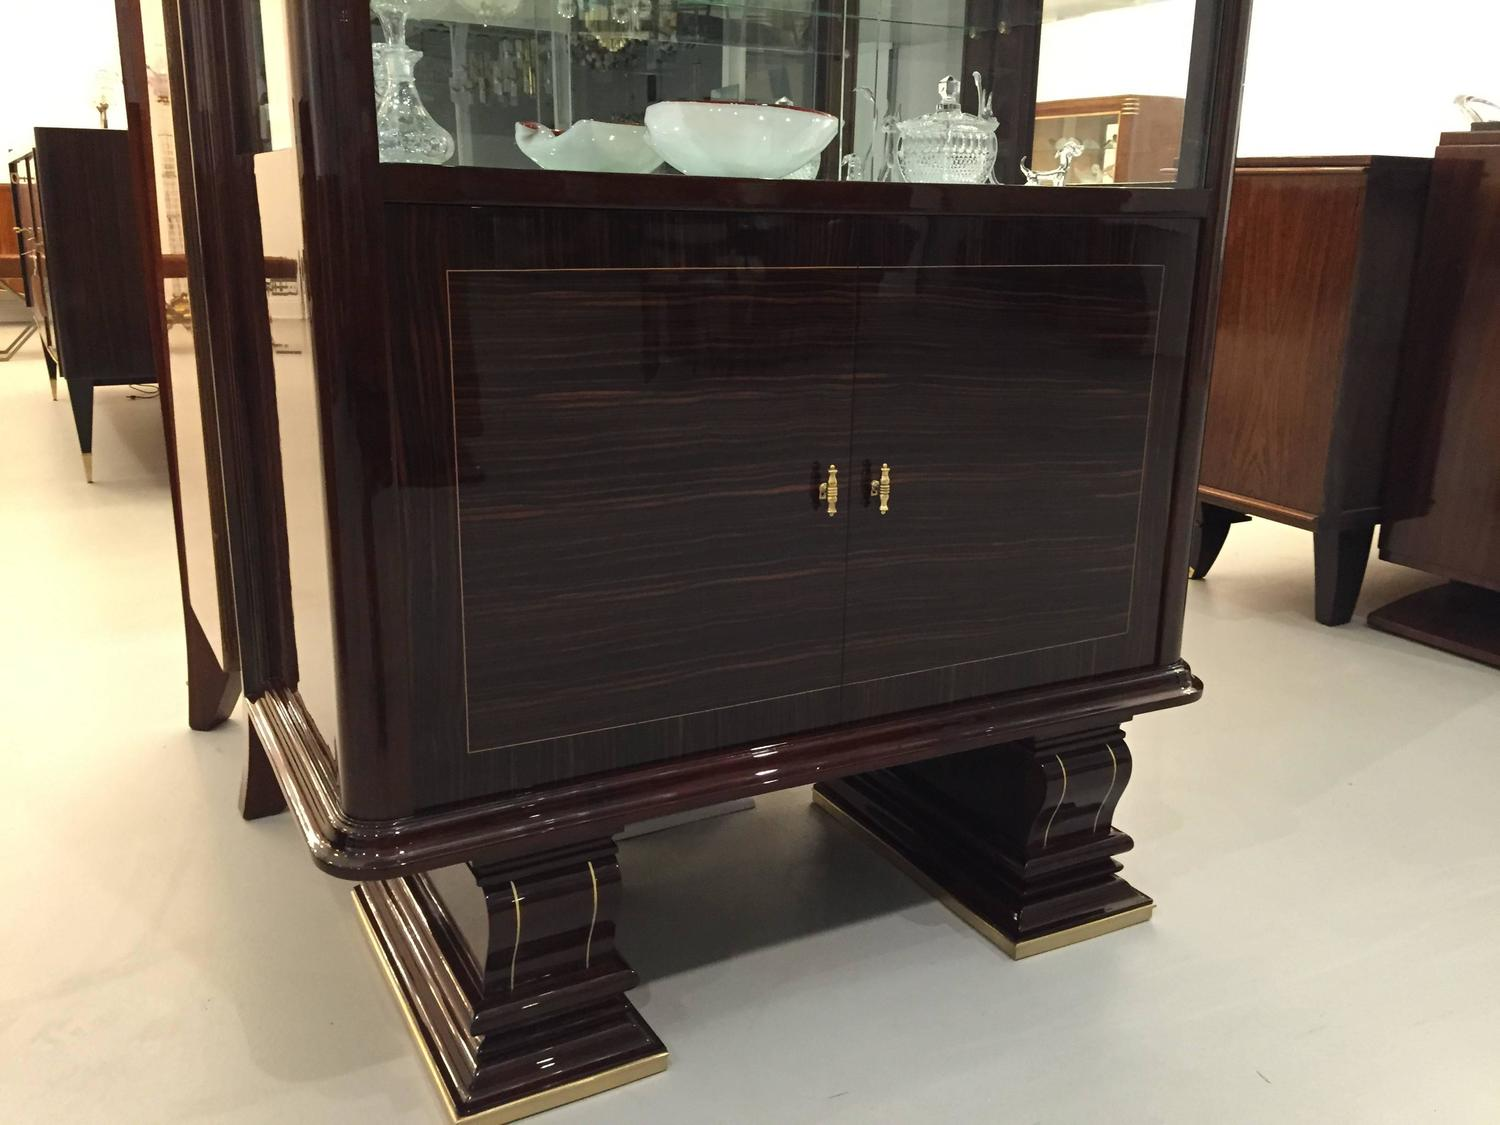 French Art Deco Vitrine Display Cabinet Dry Bar For